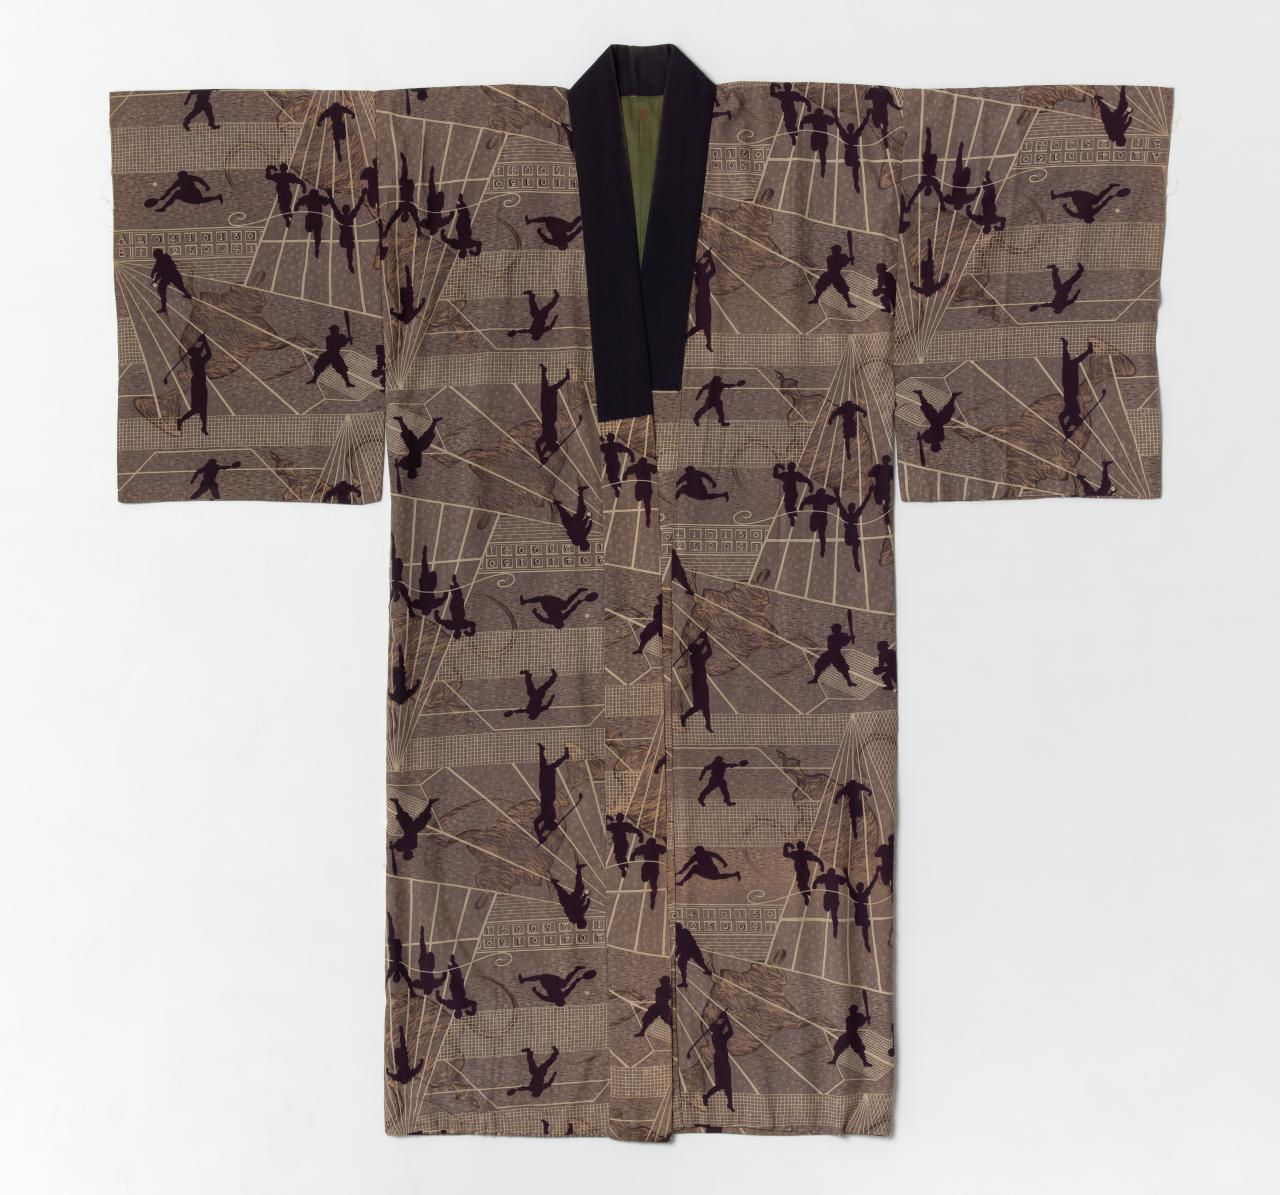 Men's undergarment (nagajuban) with baseball, golf and tennis players